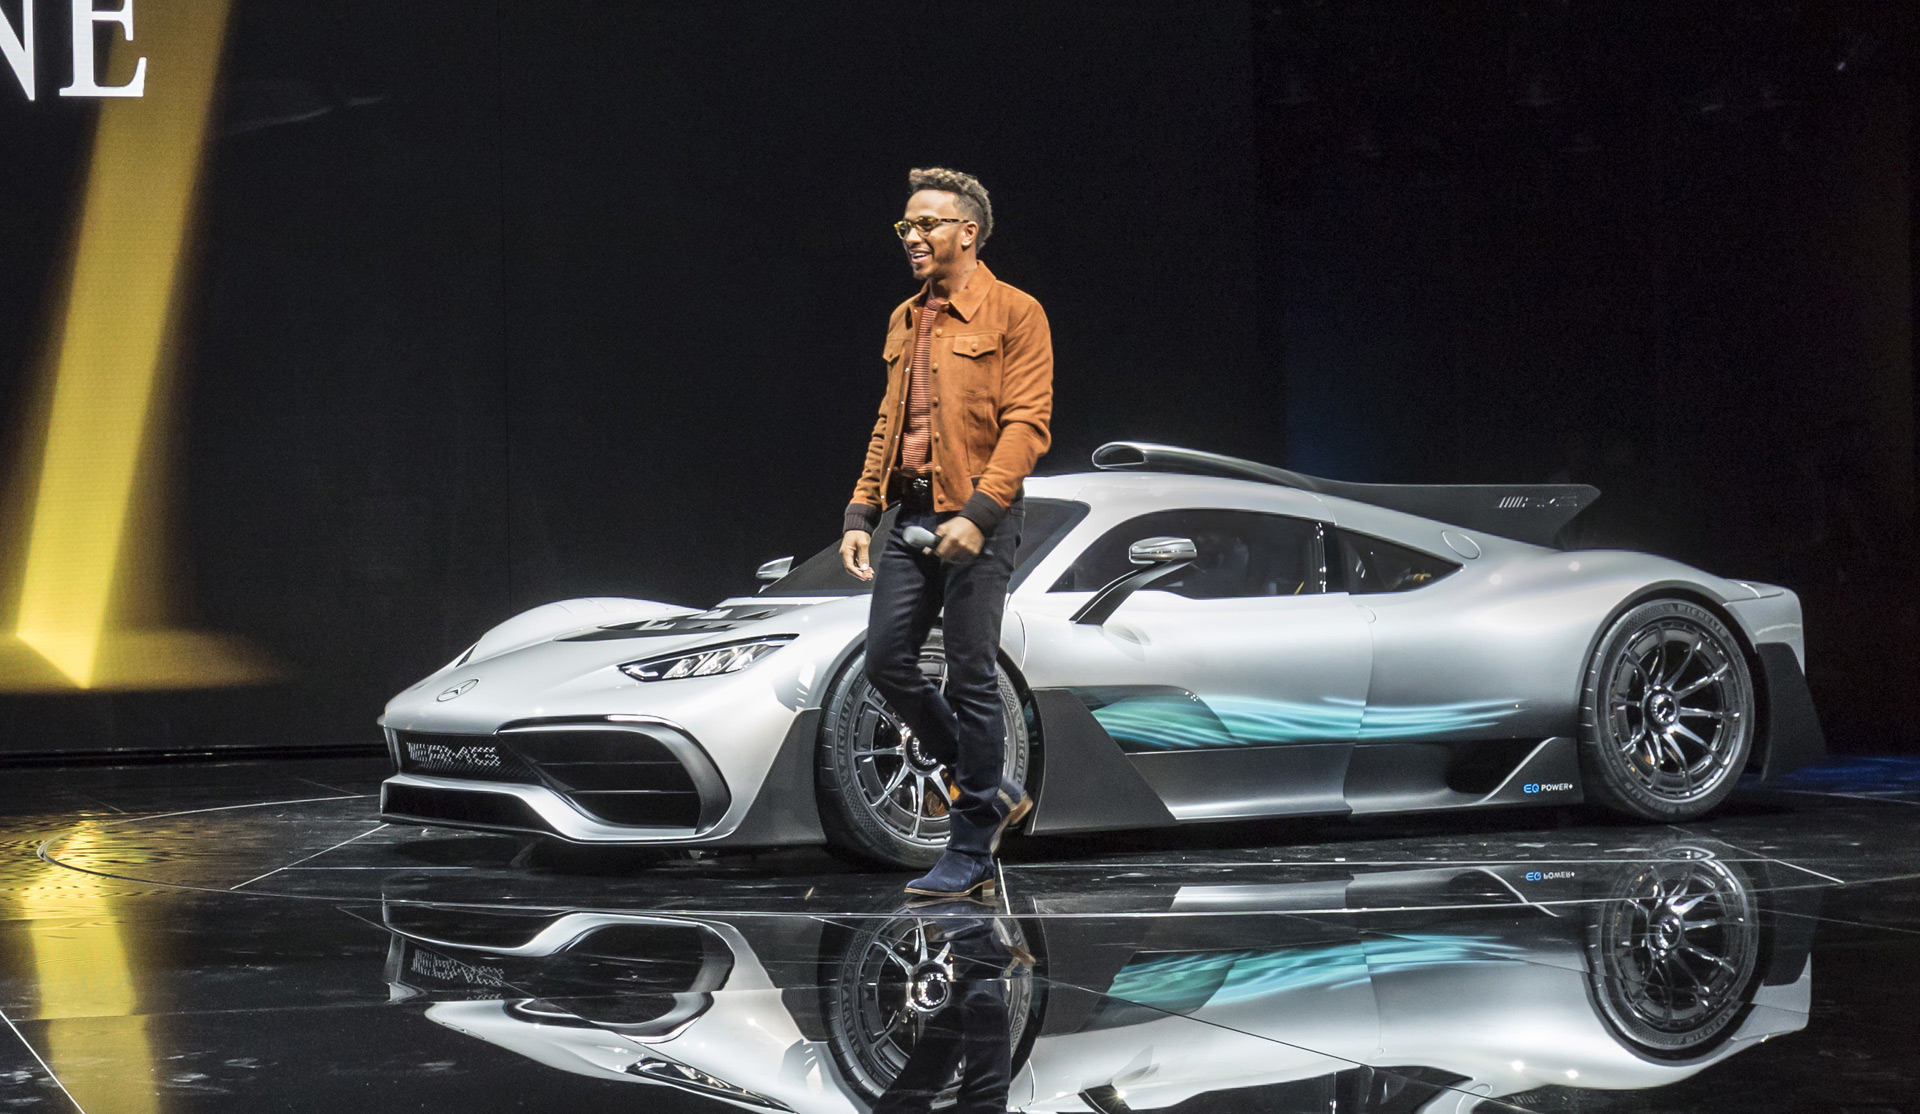 https://images.hgmsites.net/hug/lewis-hamilton-introduces-the-mercedes-amg-project-one-at-the-2017-frankfurt-motor-show_100623202_h.jpg